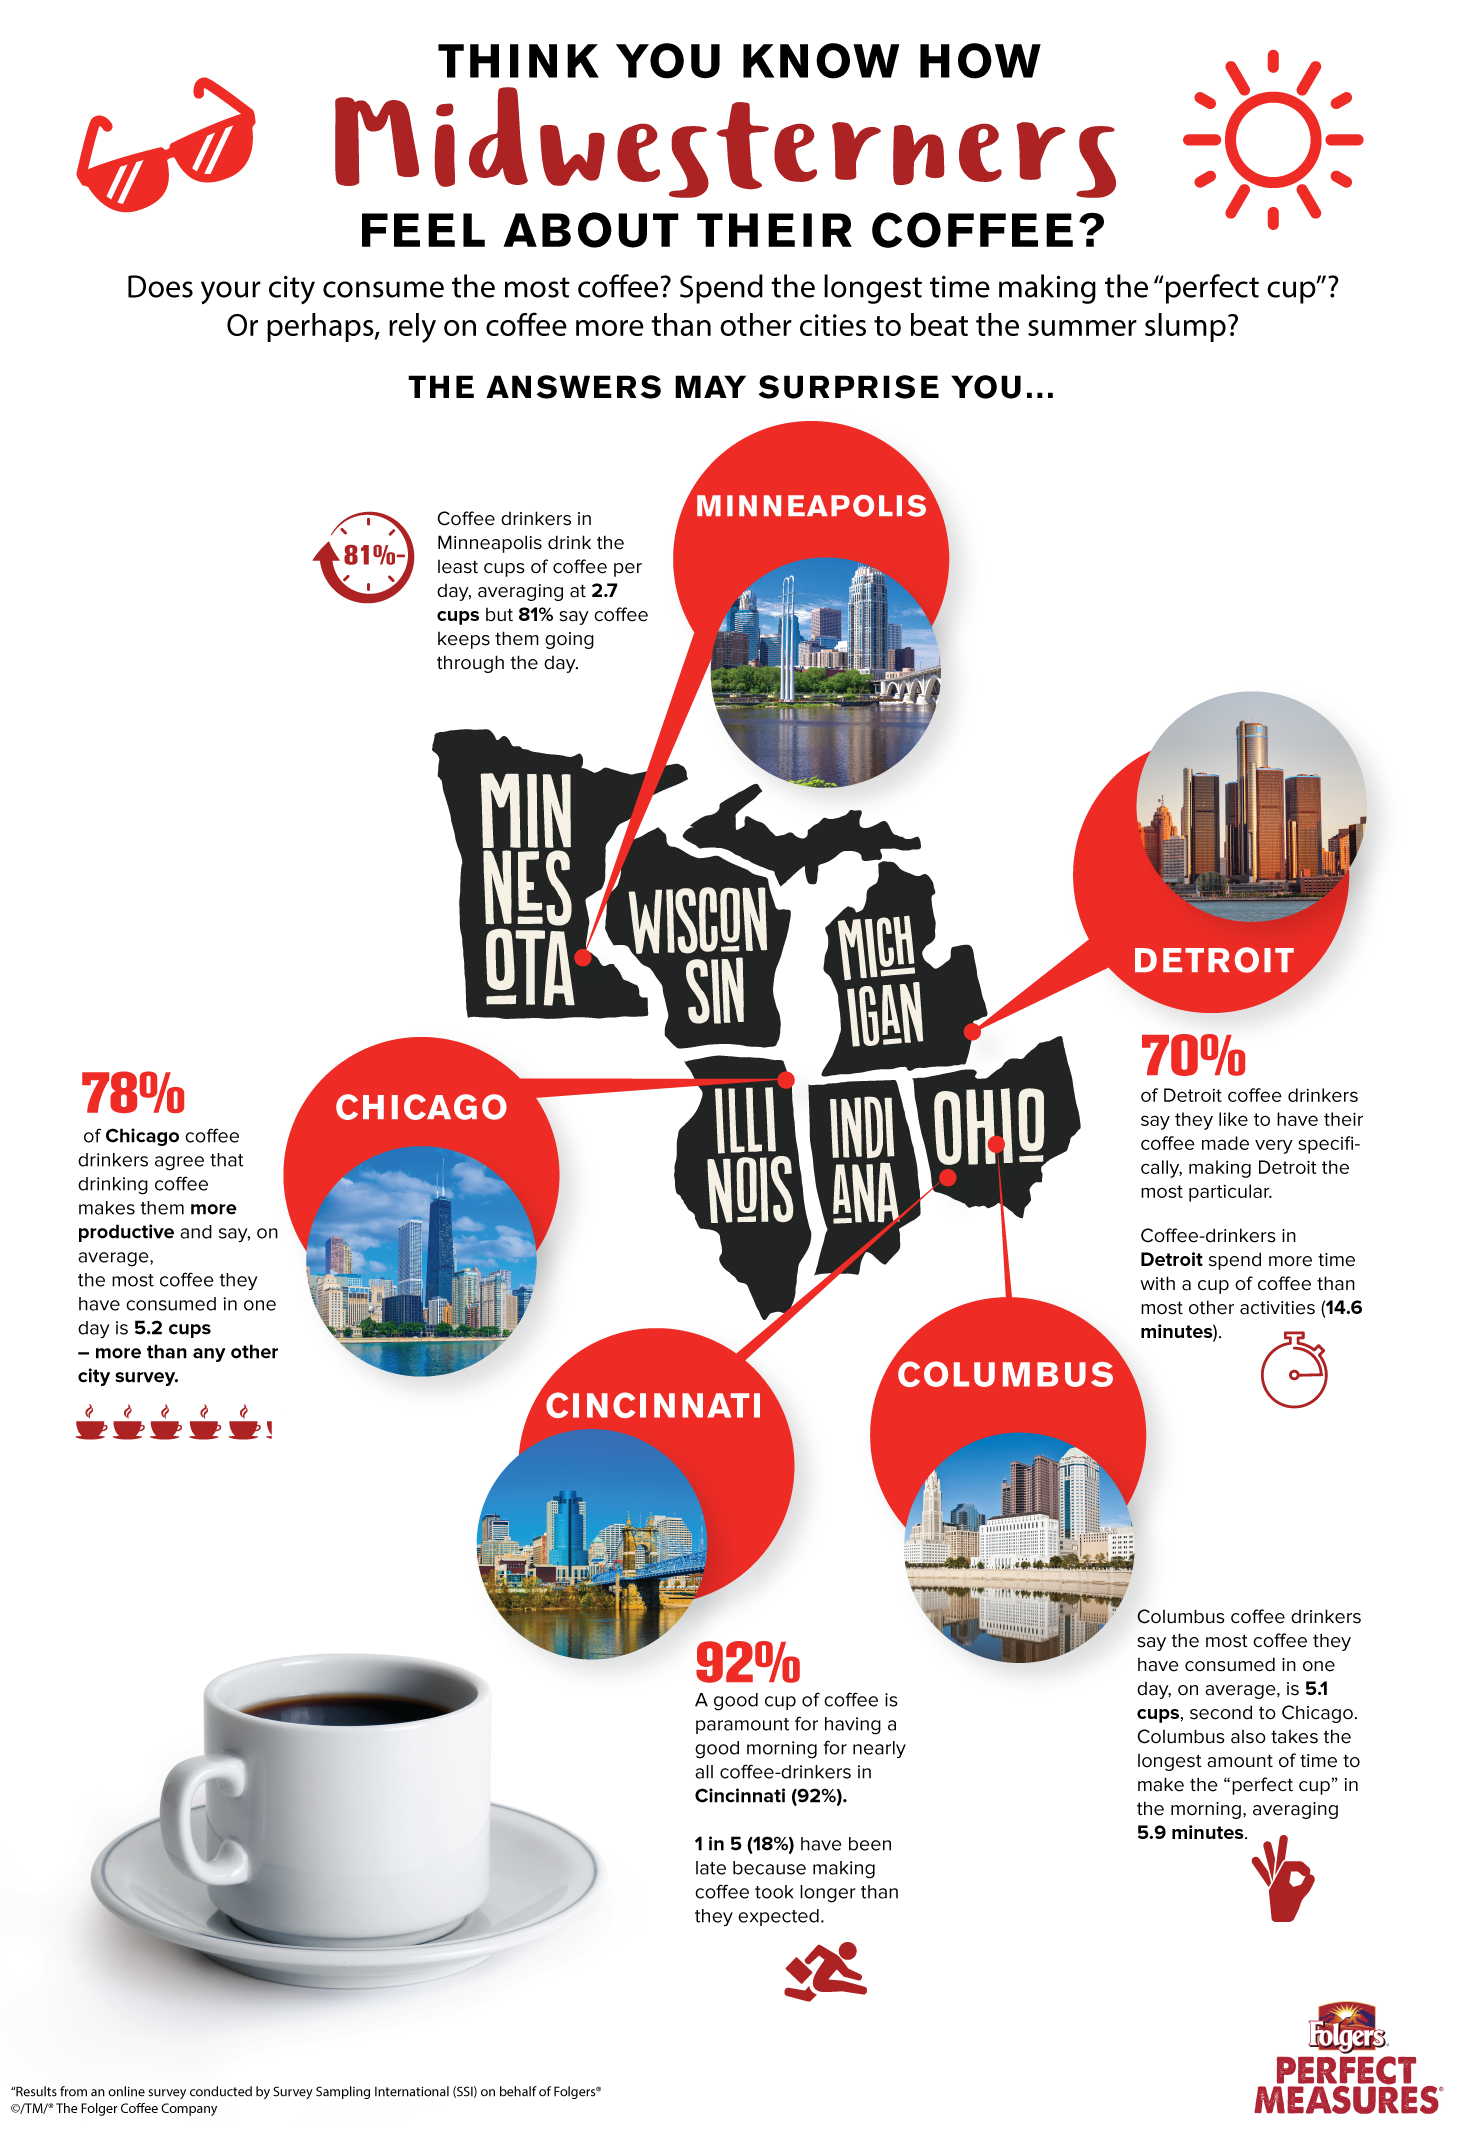 Folgers-Midwest-Infographic-v5.png